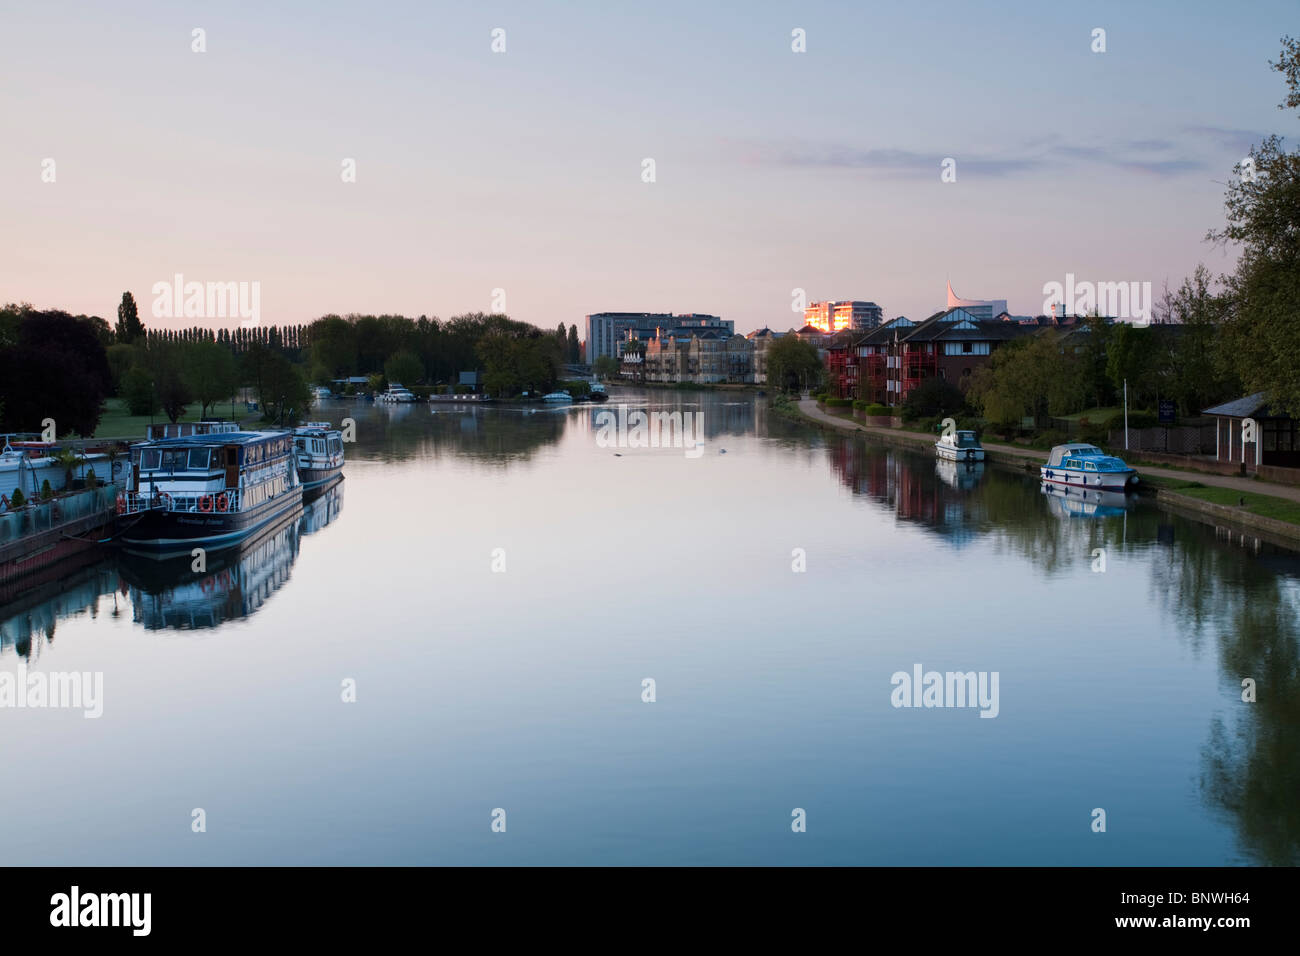 Dawn over the River Thames from Caversham Bridge, Reading, Berkshire, Uk - Stock Image